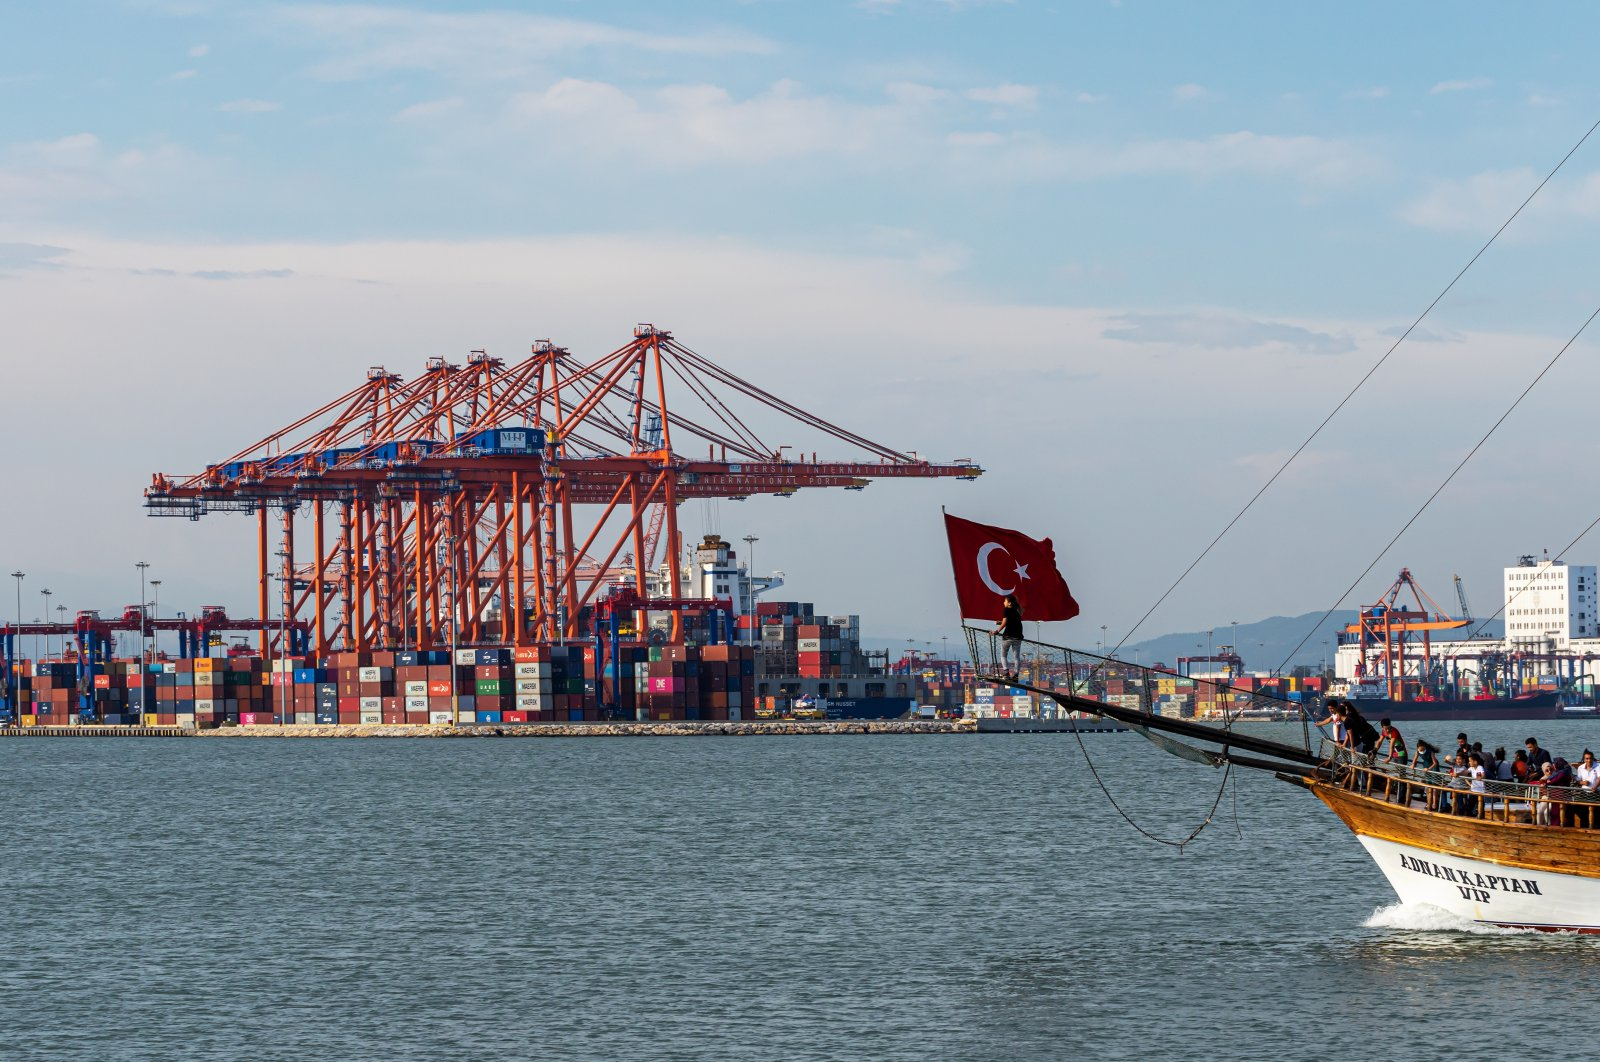 Containers seen at the Mersin International Port (MIP) in southern Mersin province, Turkey, June 14, 2020. (Shutterstock Photo by Can Aran)